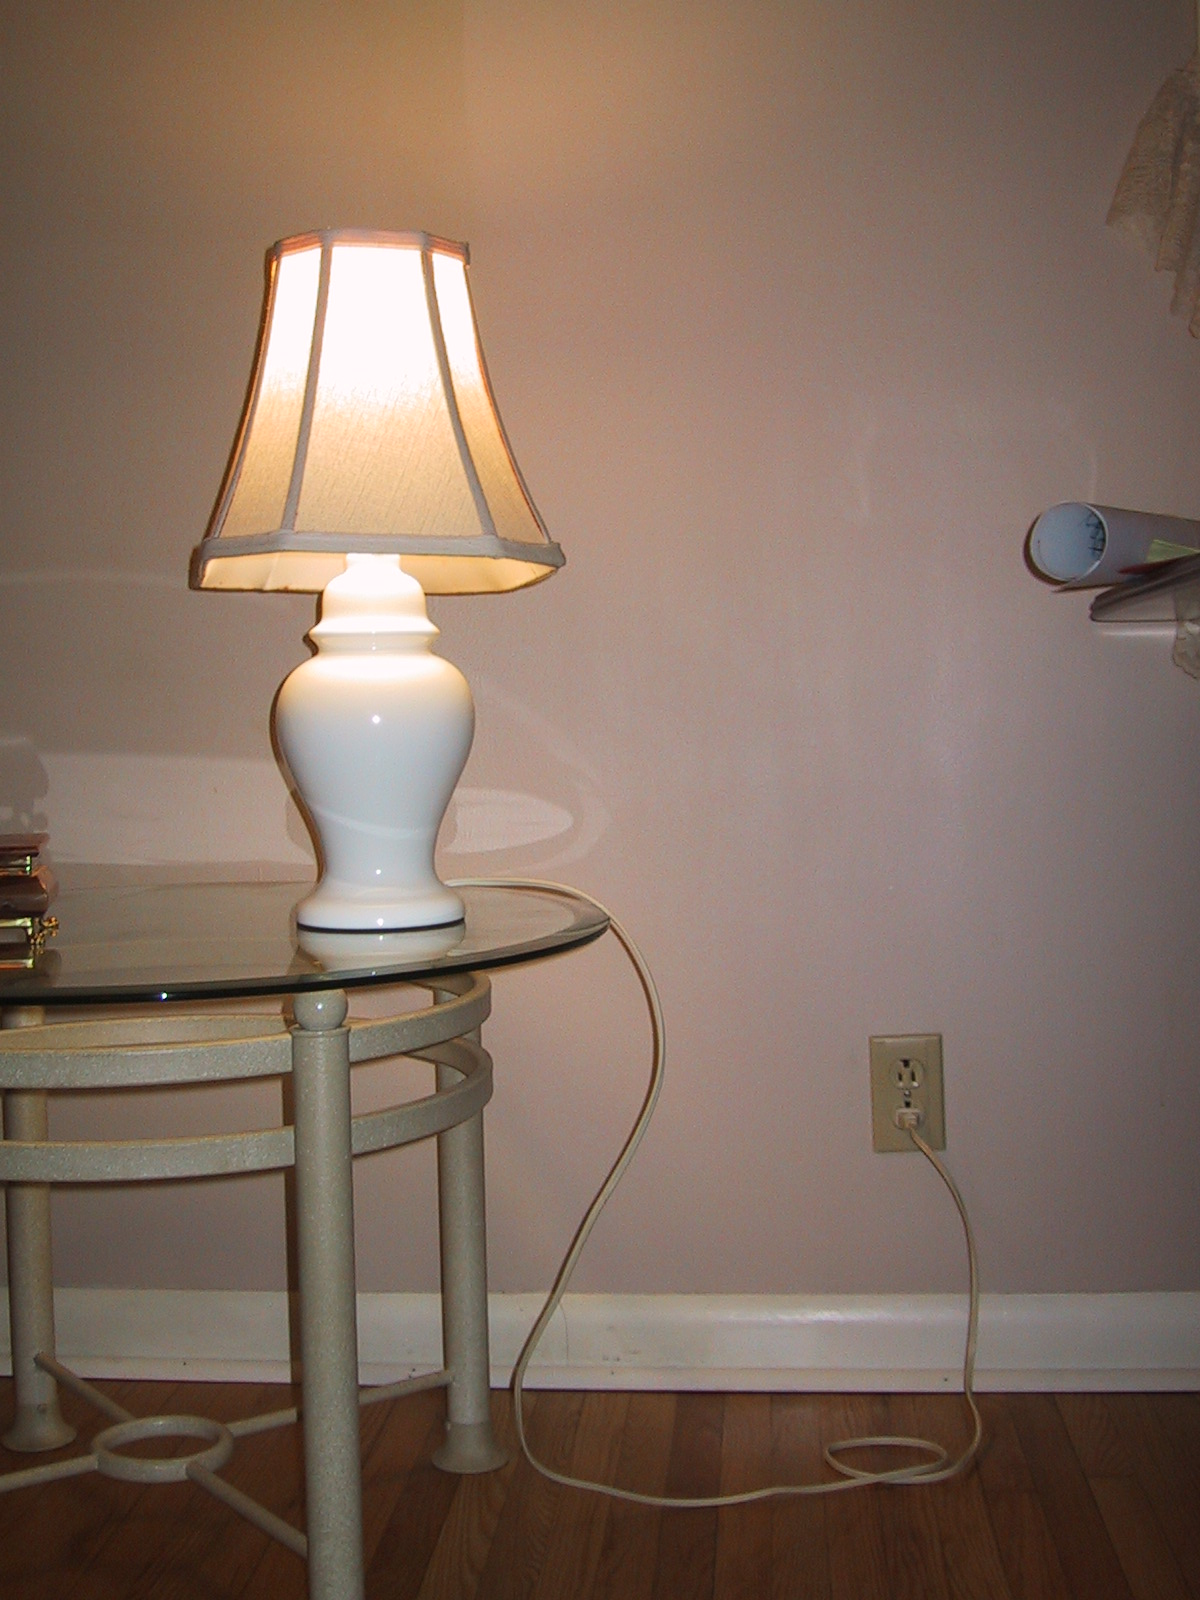 Wall Lamps That Plug Into An Outlet : Mains electricity - Wikipedia